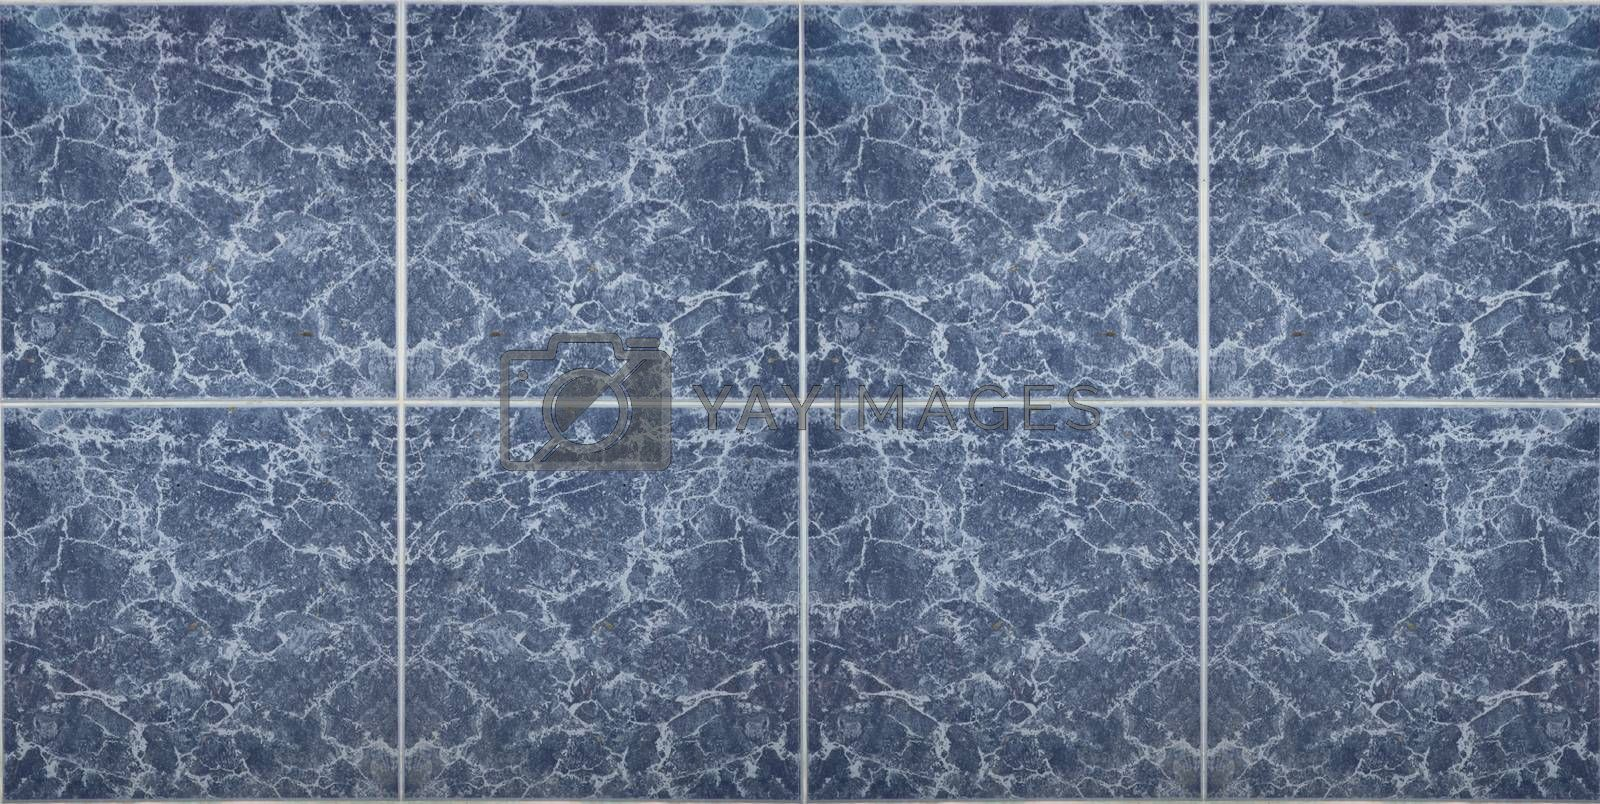 Blue patterned floor tiles for the interior.